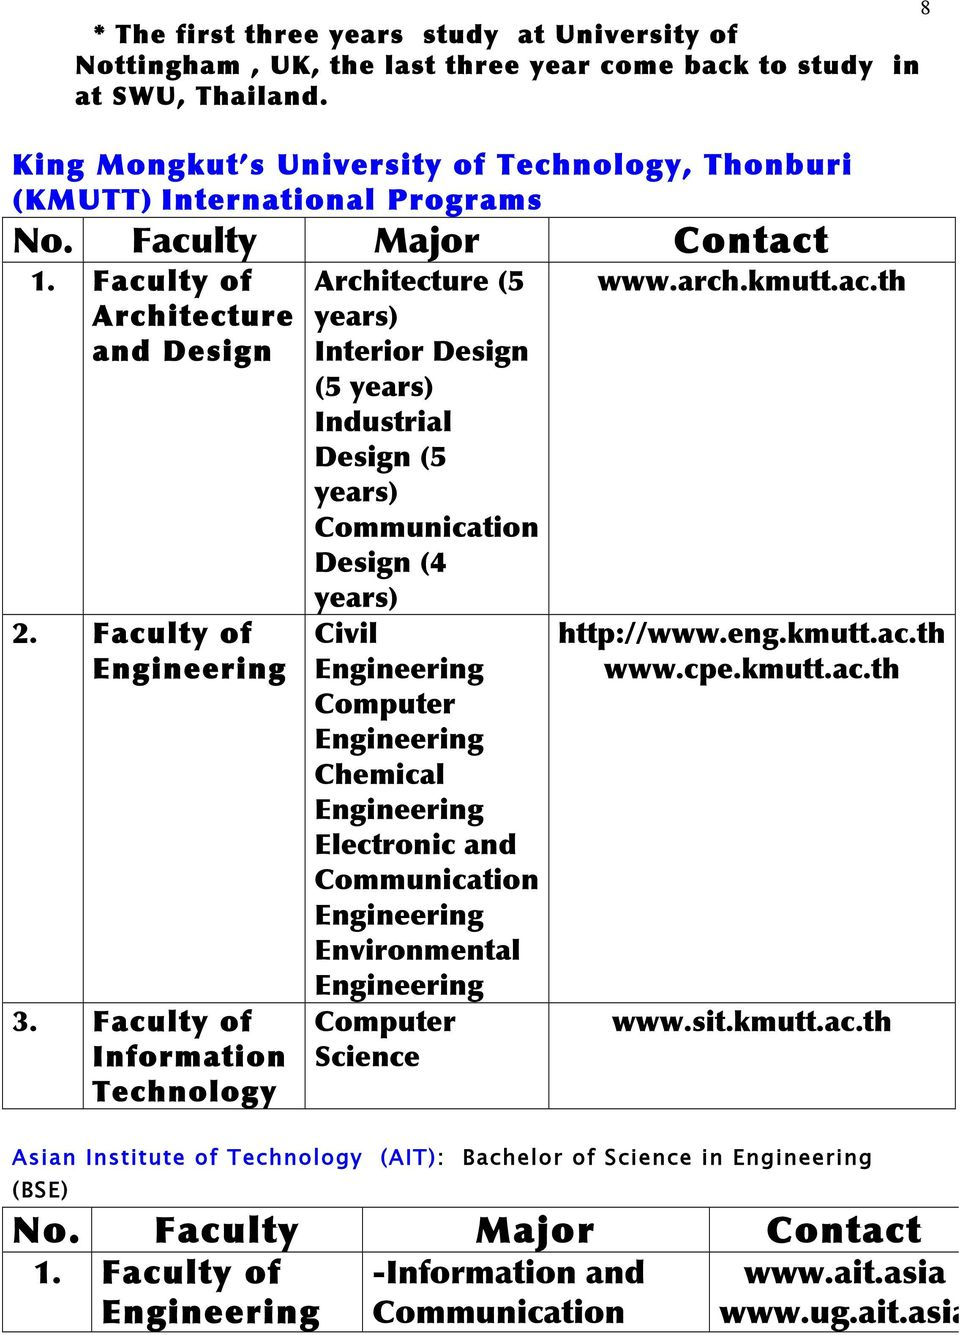 Faculty of Information Technology Architecture (5 years) Interior Design (5 years) Industrial Design (5 years) Communication Design (4 years) Civil Computer Chemical Electronic and